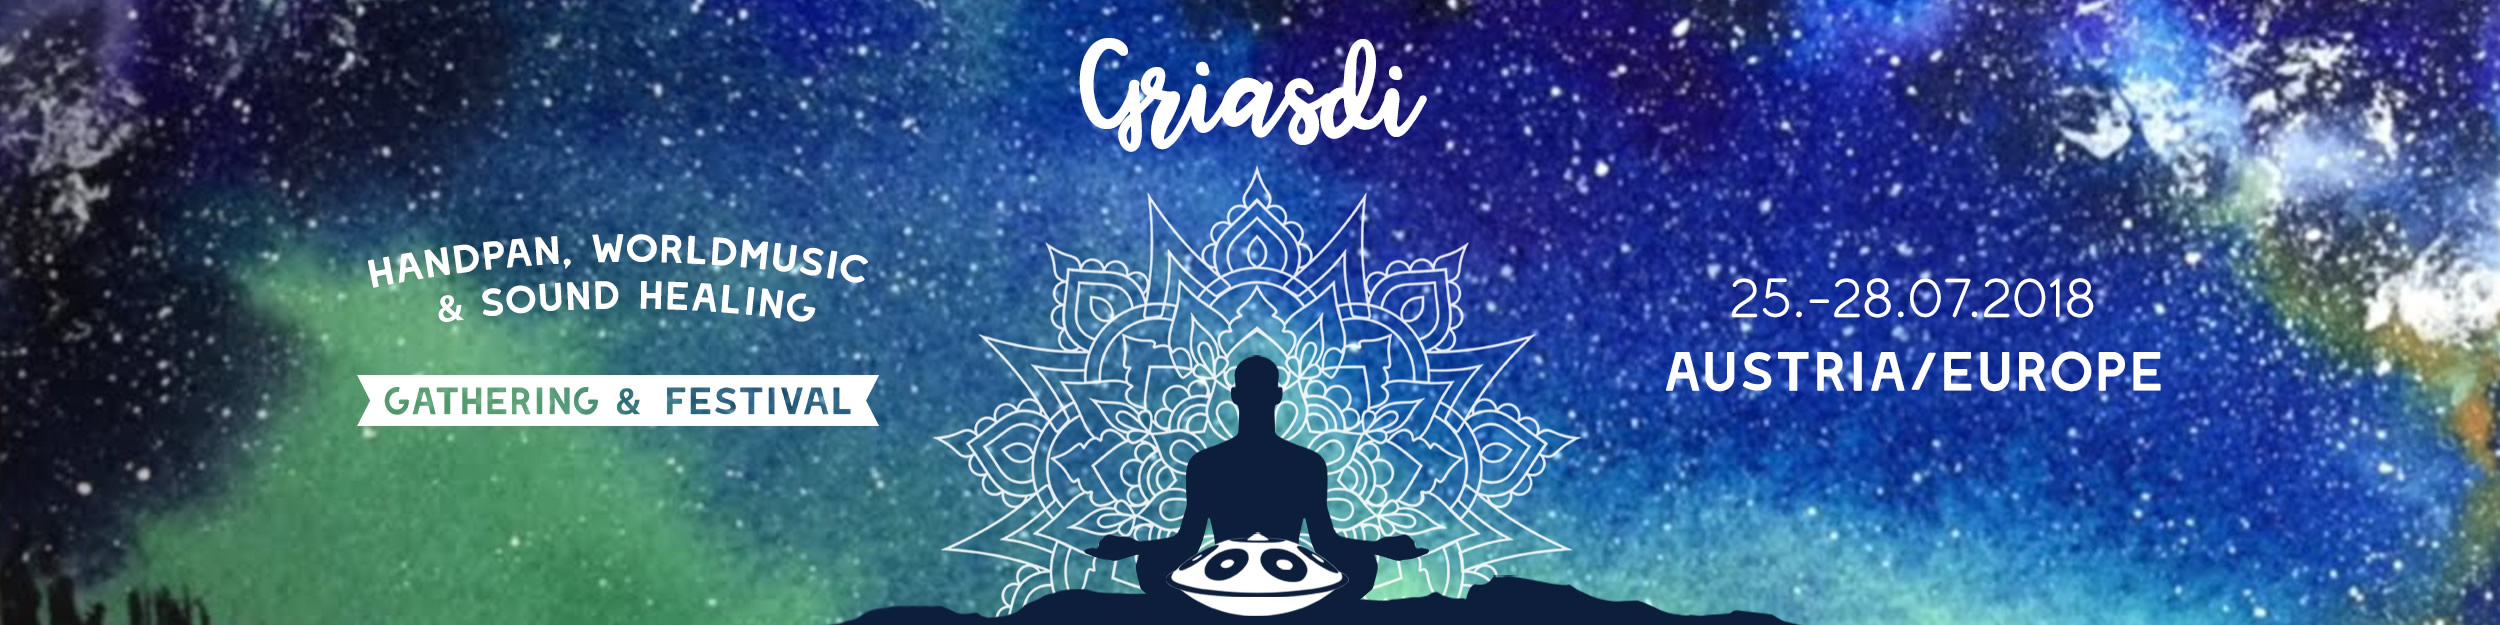 GRIASDI – Handpan, World Musik & Sound Healing Gathering and Festival